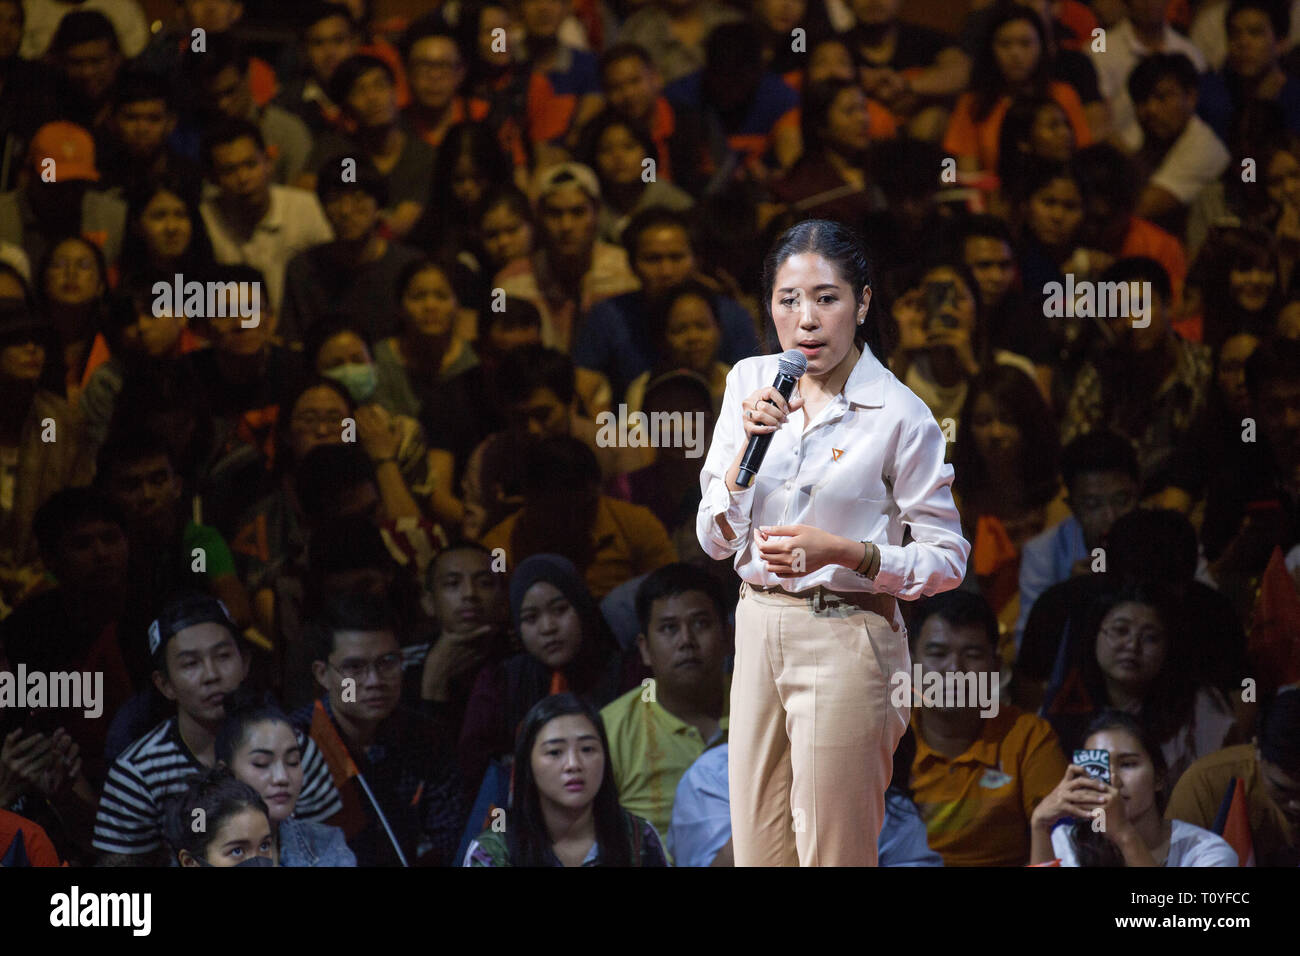 Bangkok, Thailand. 22nd Mar, 2019. Future Forward Party Spokesperson Pannika Wanich speaks during the Future Forward Party latest rally before the Thai General Election at the Thai-Japanese Stadium in Bangkok.The country will hold the general election on March 24, 2019, five years after the May 2014 military coup by Junta chief Prayut Chan-o-cha. Credit: Guillaume Payen/SOPA Images/ZUMA Wire/Alamy Live News Stock Photo